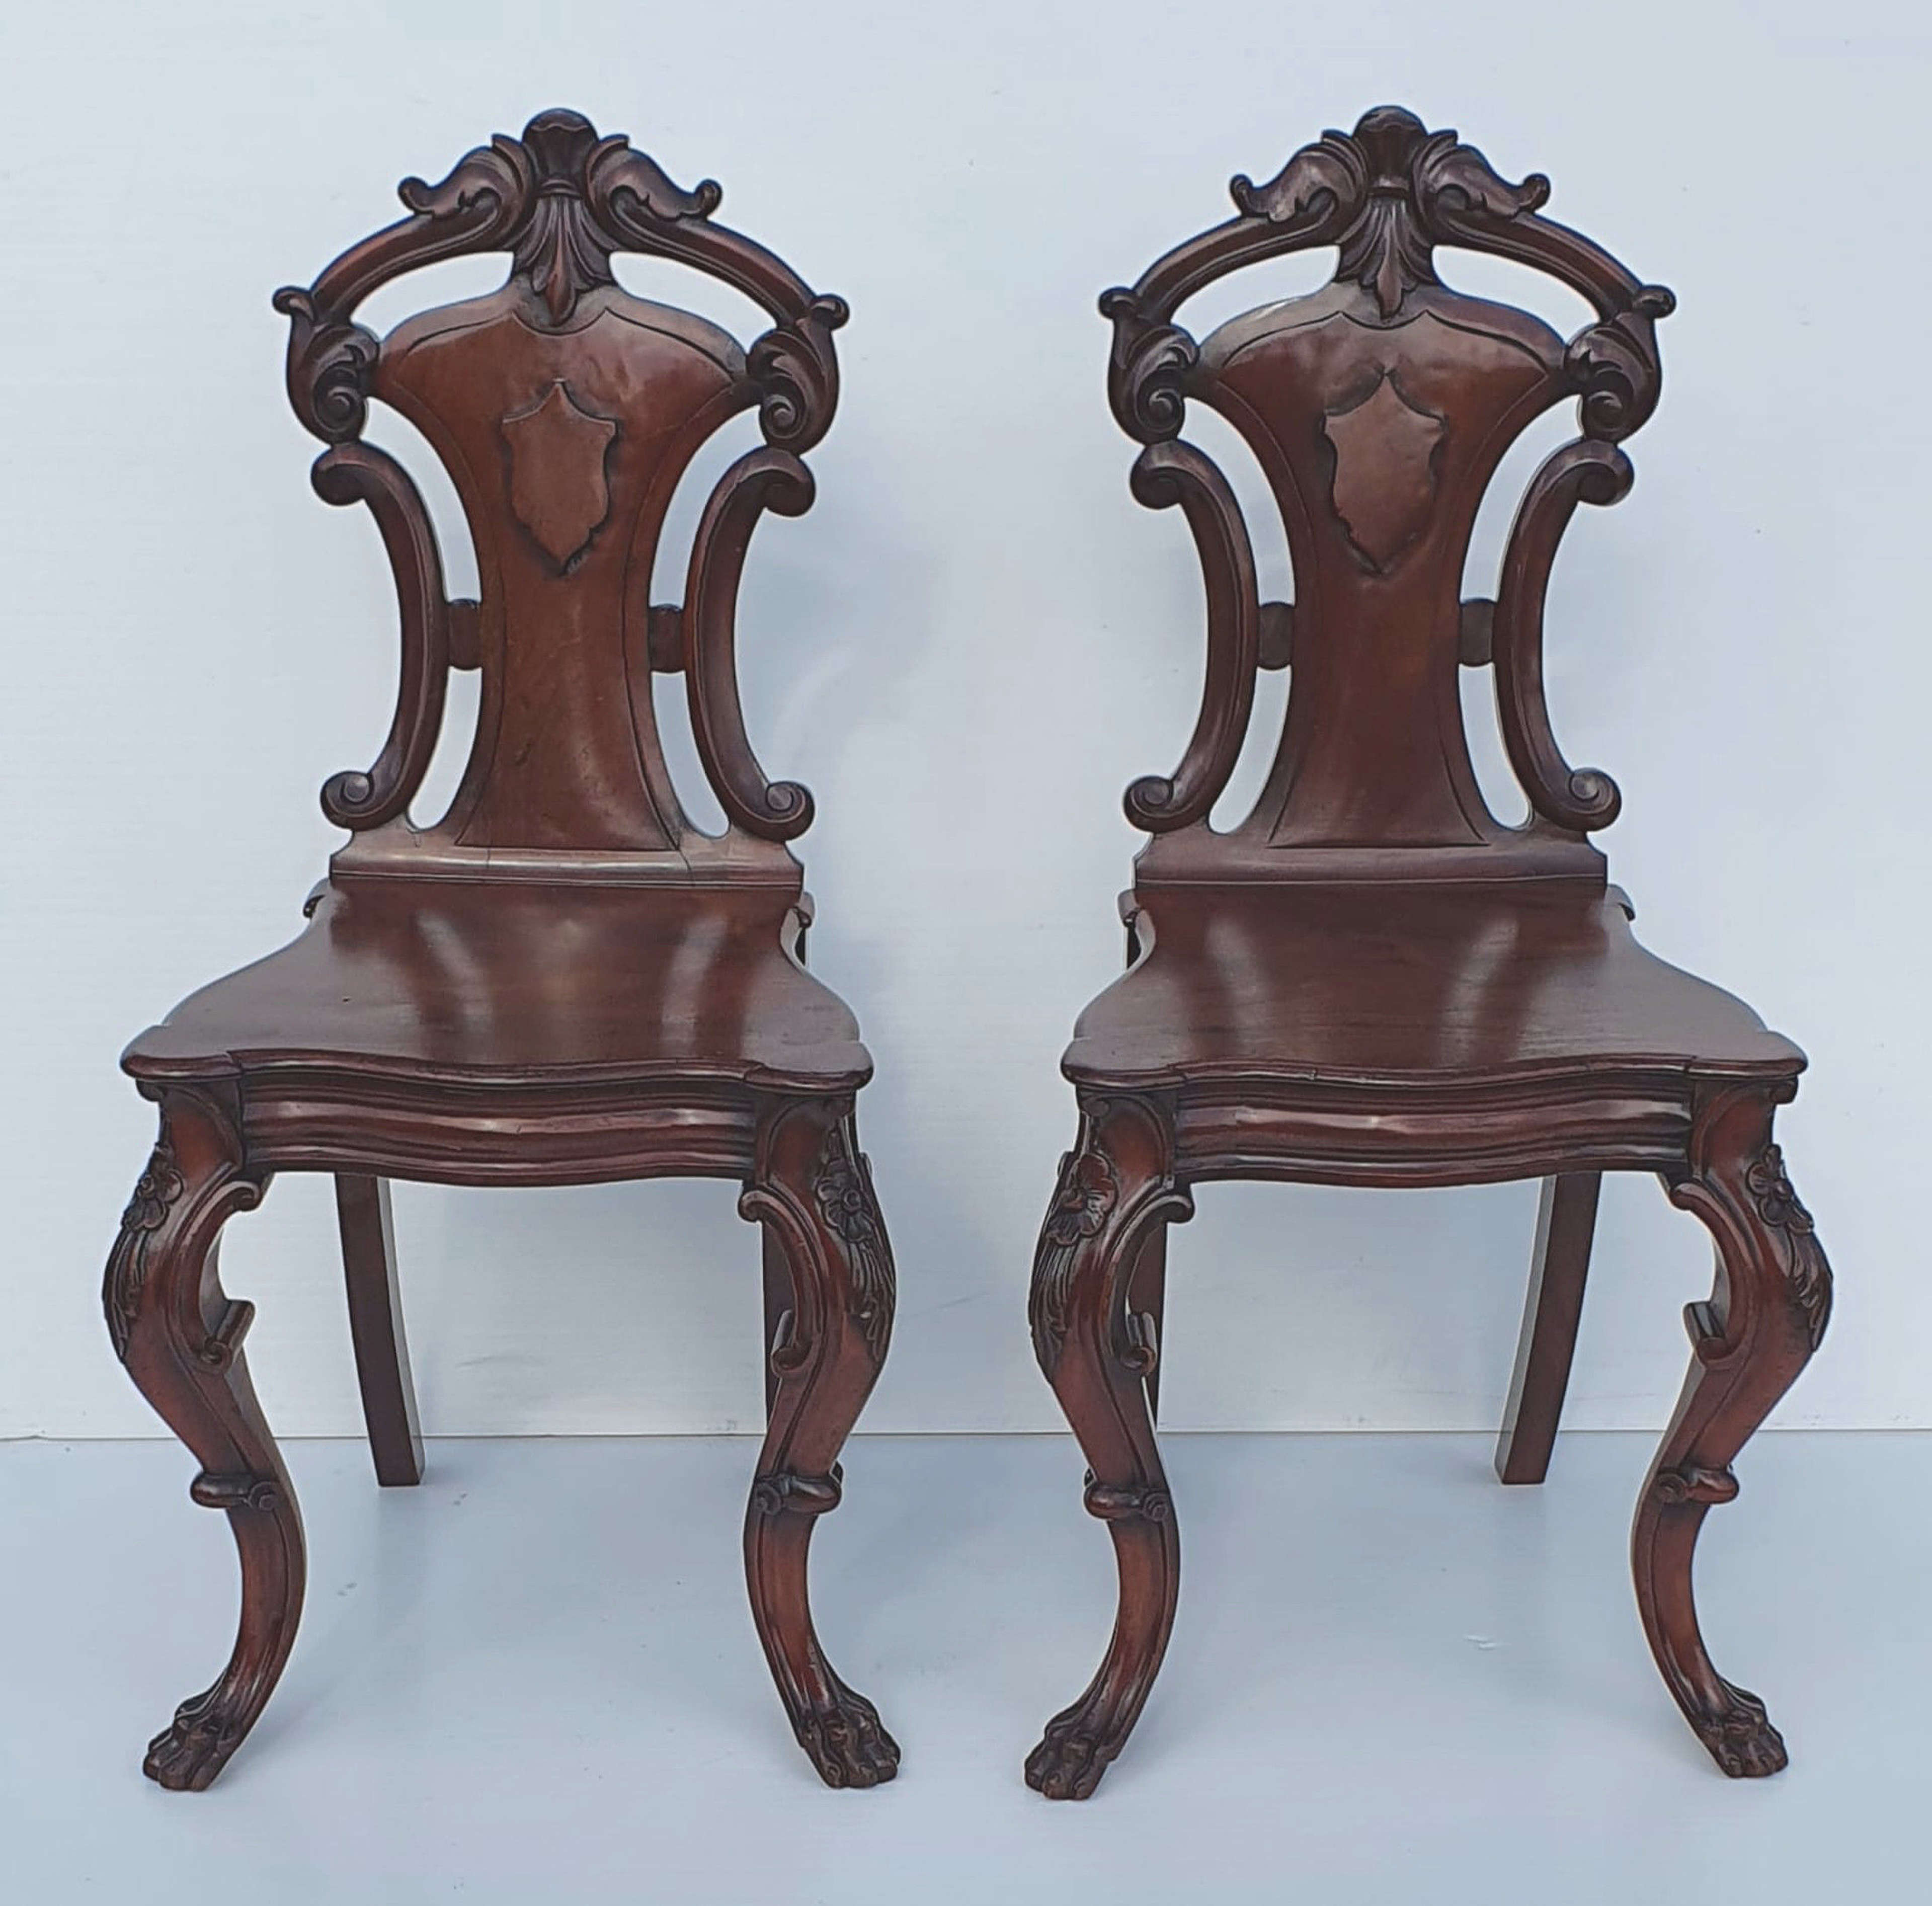 Pair of 19th Century Hall Chairs attributed to Strahan of Dublin